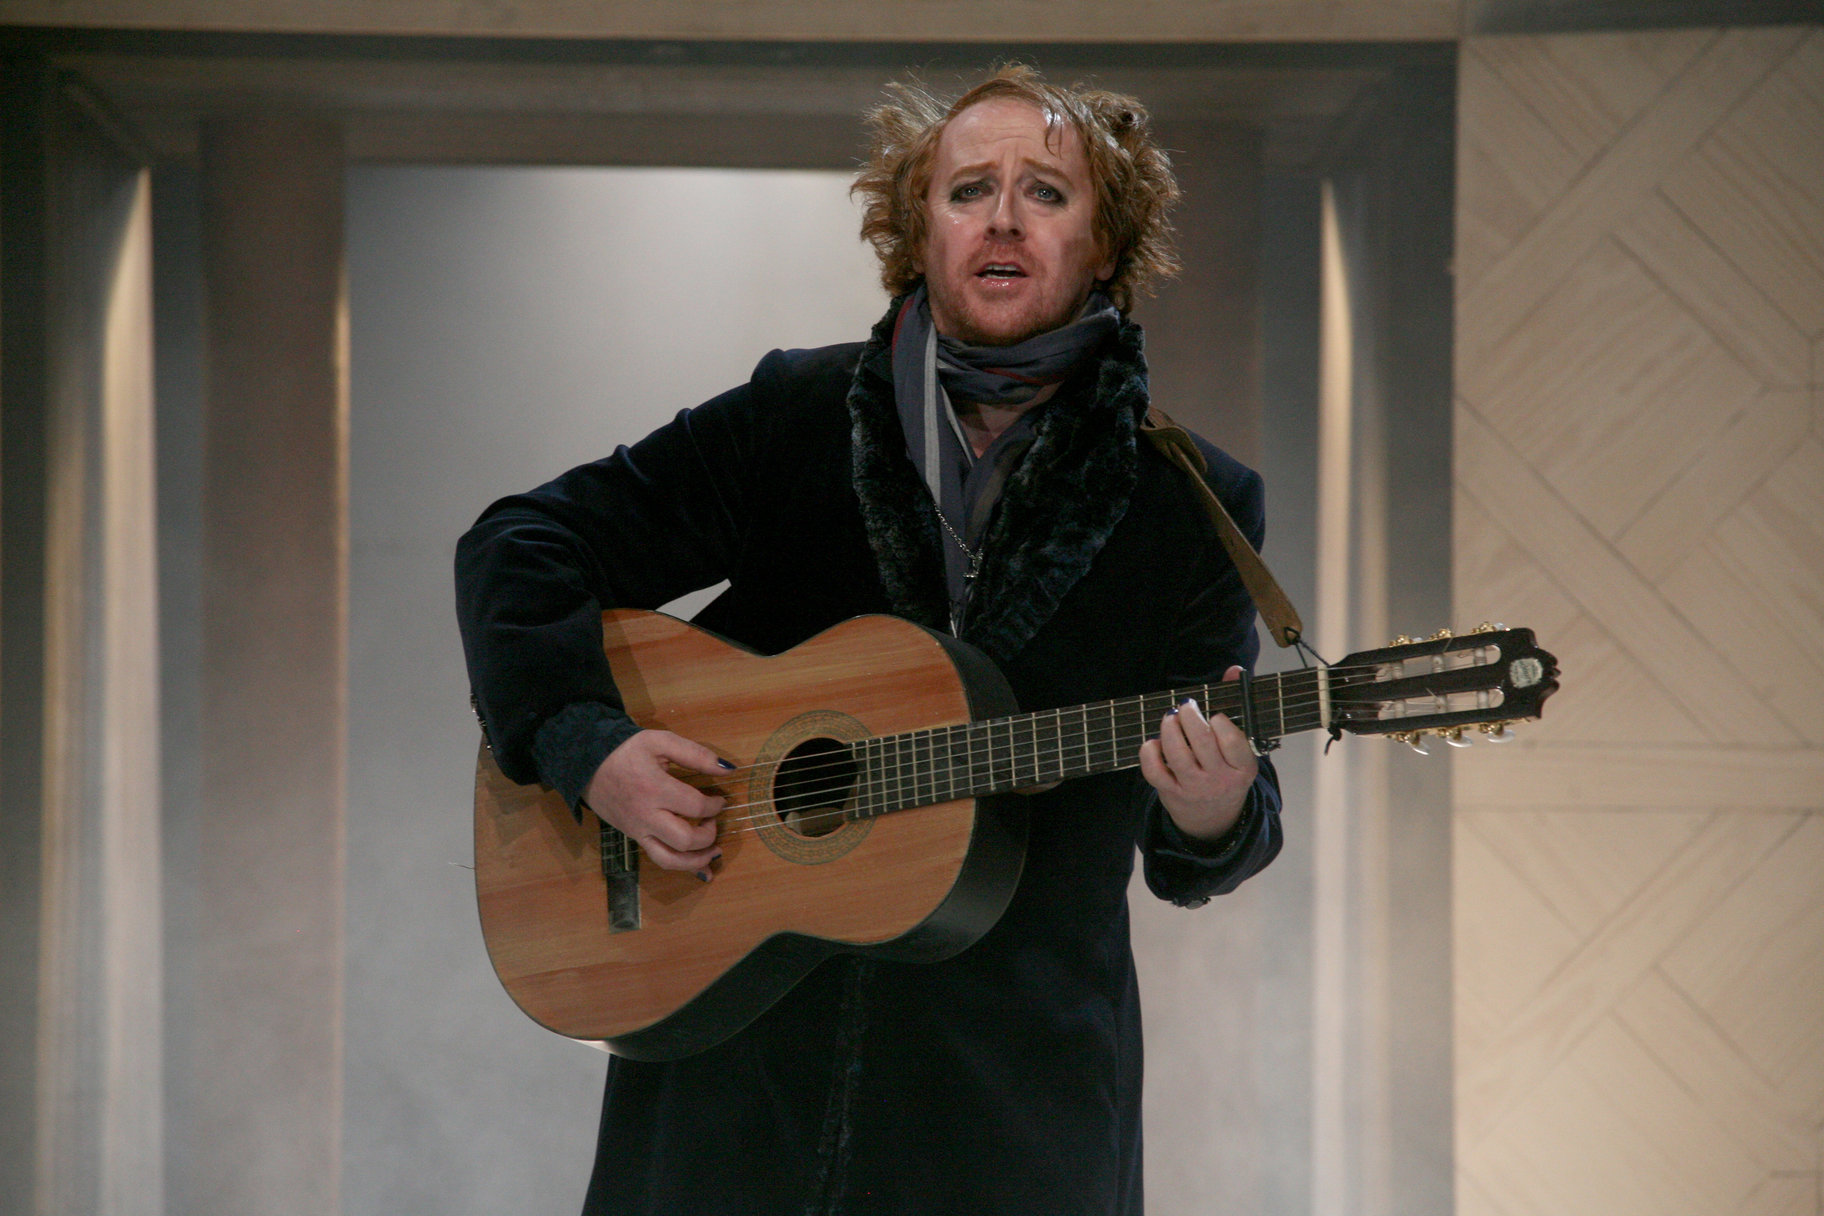 A ragged man playing the guitar.